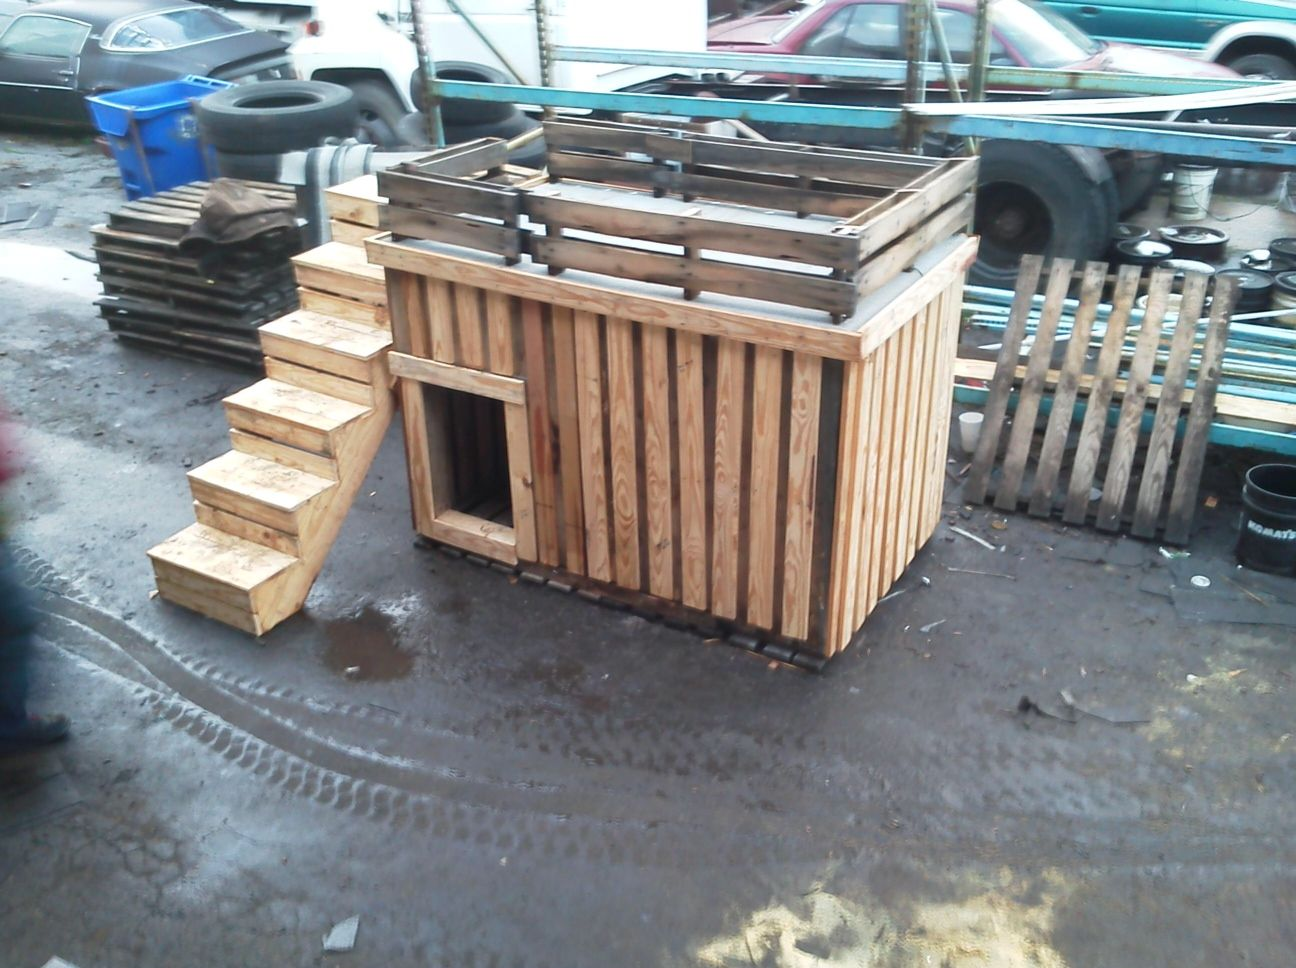 Dog house made from palletslove the deck Wonder if I can make